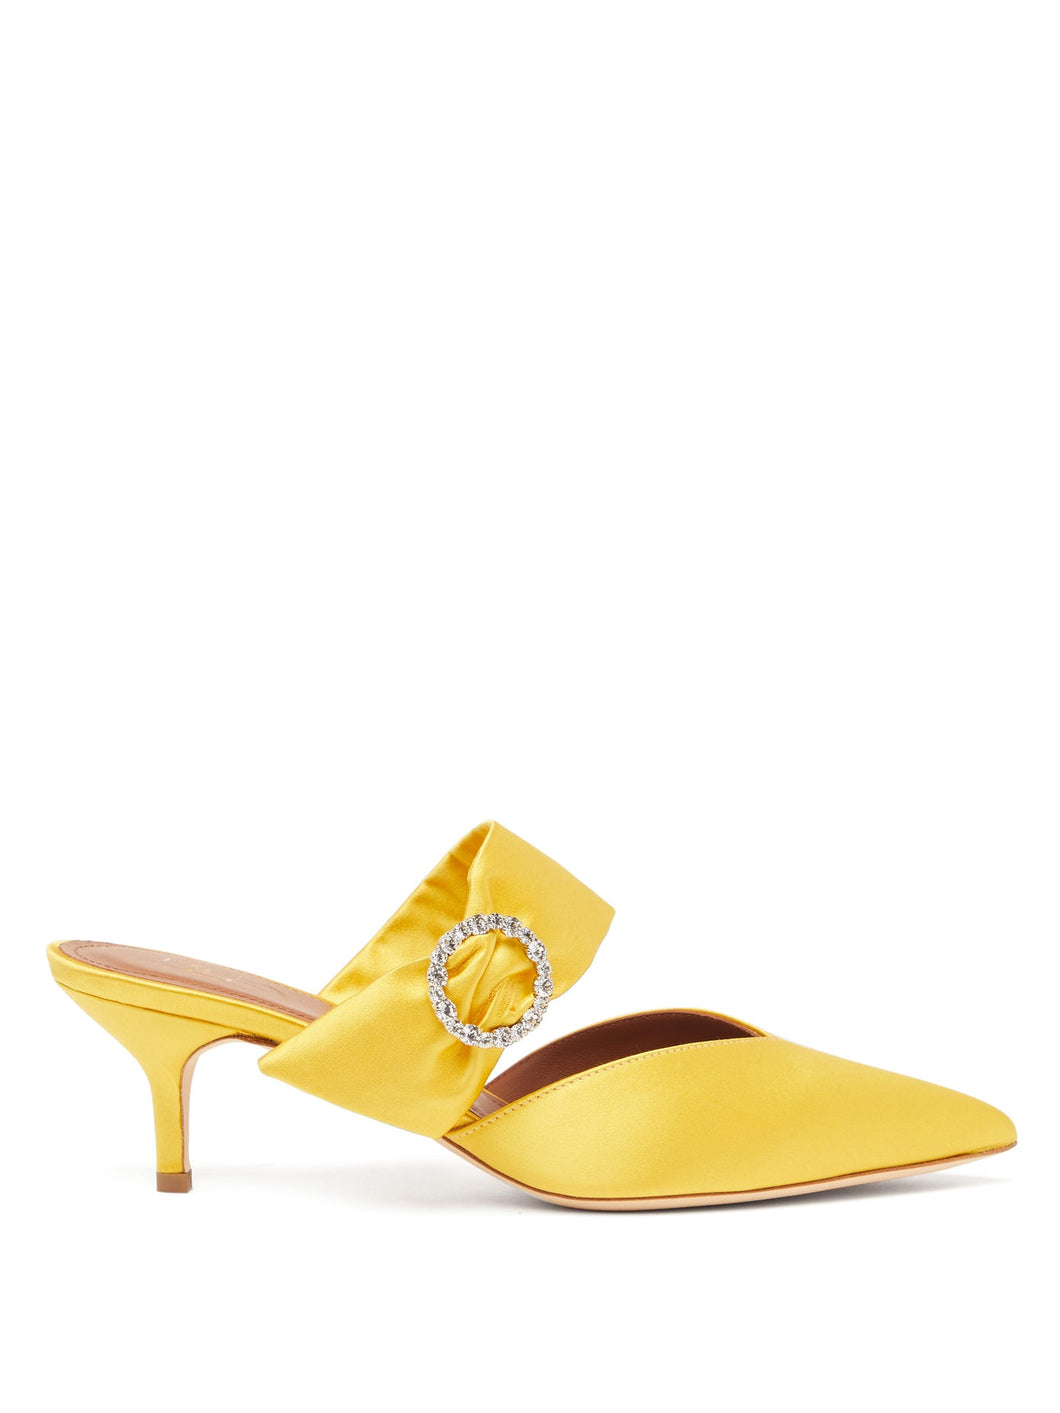 Maite crystal-buckle satin mules